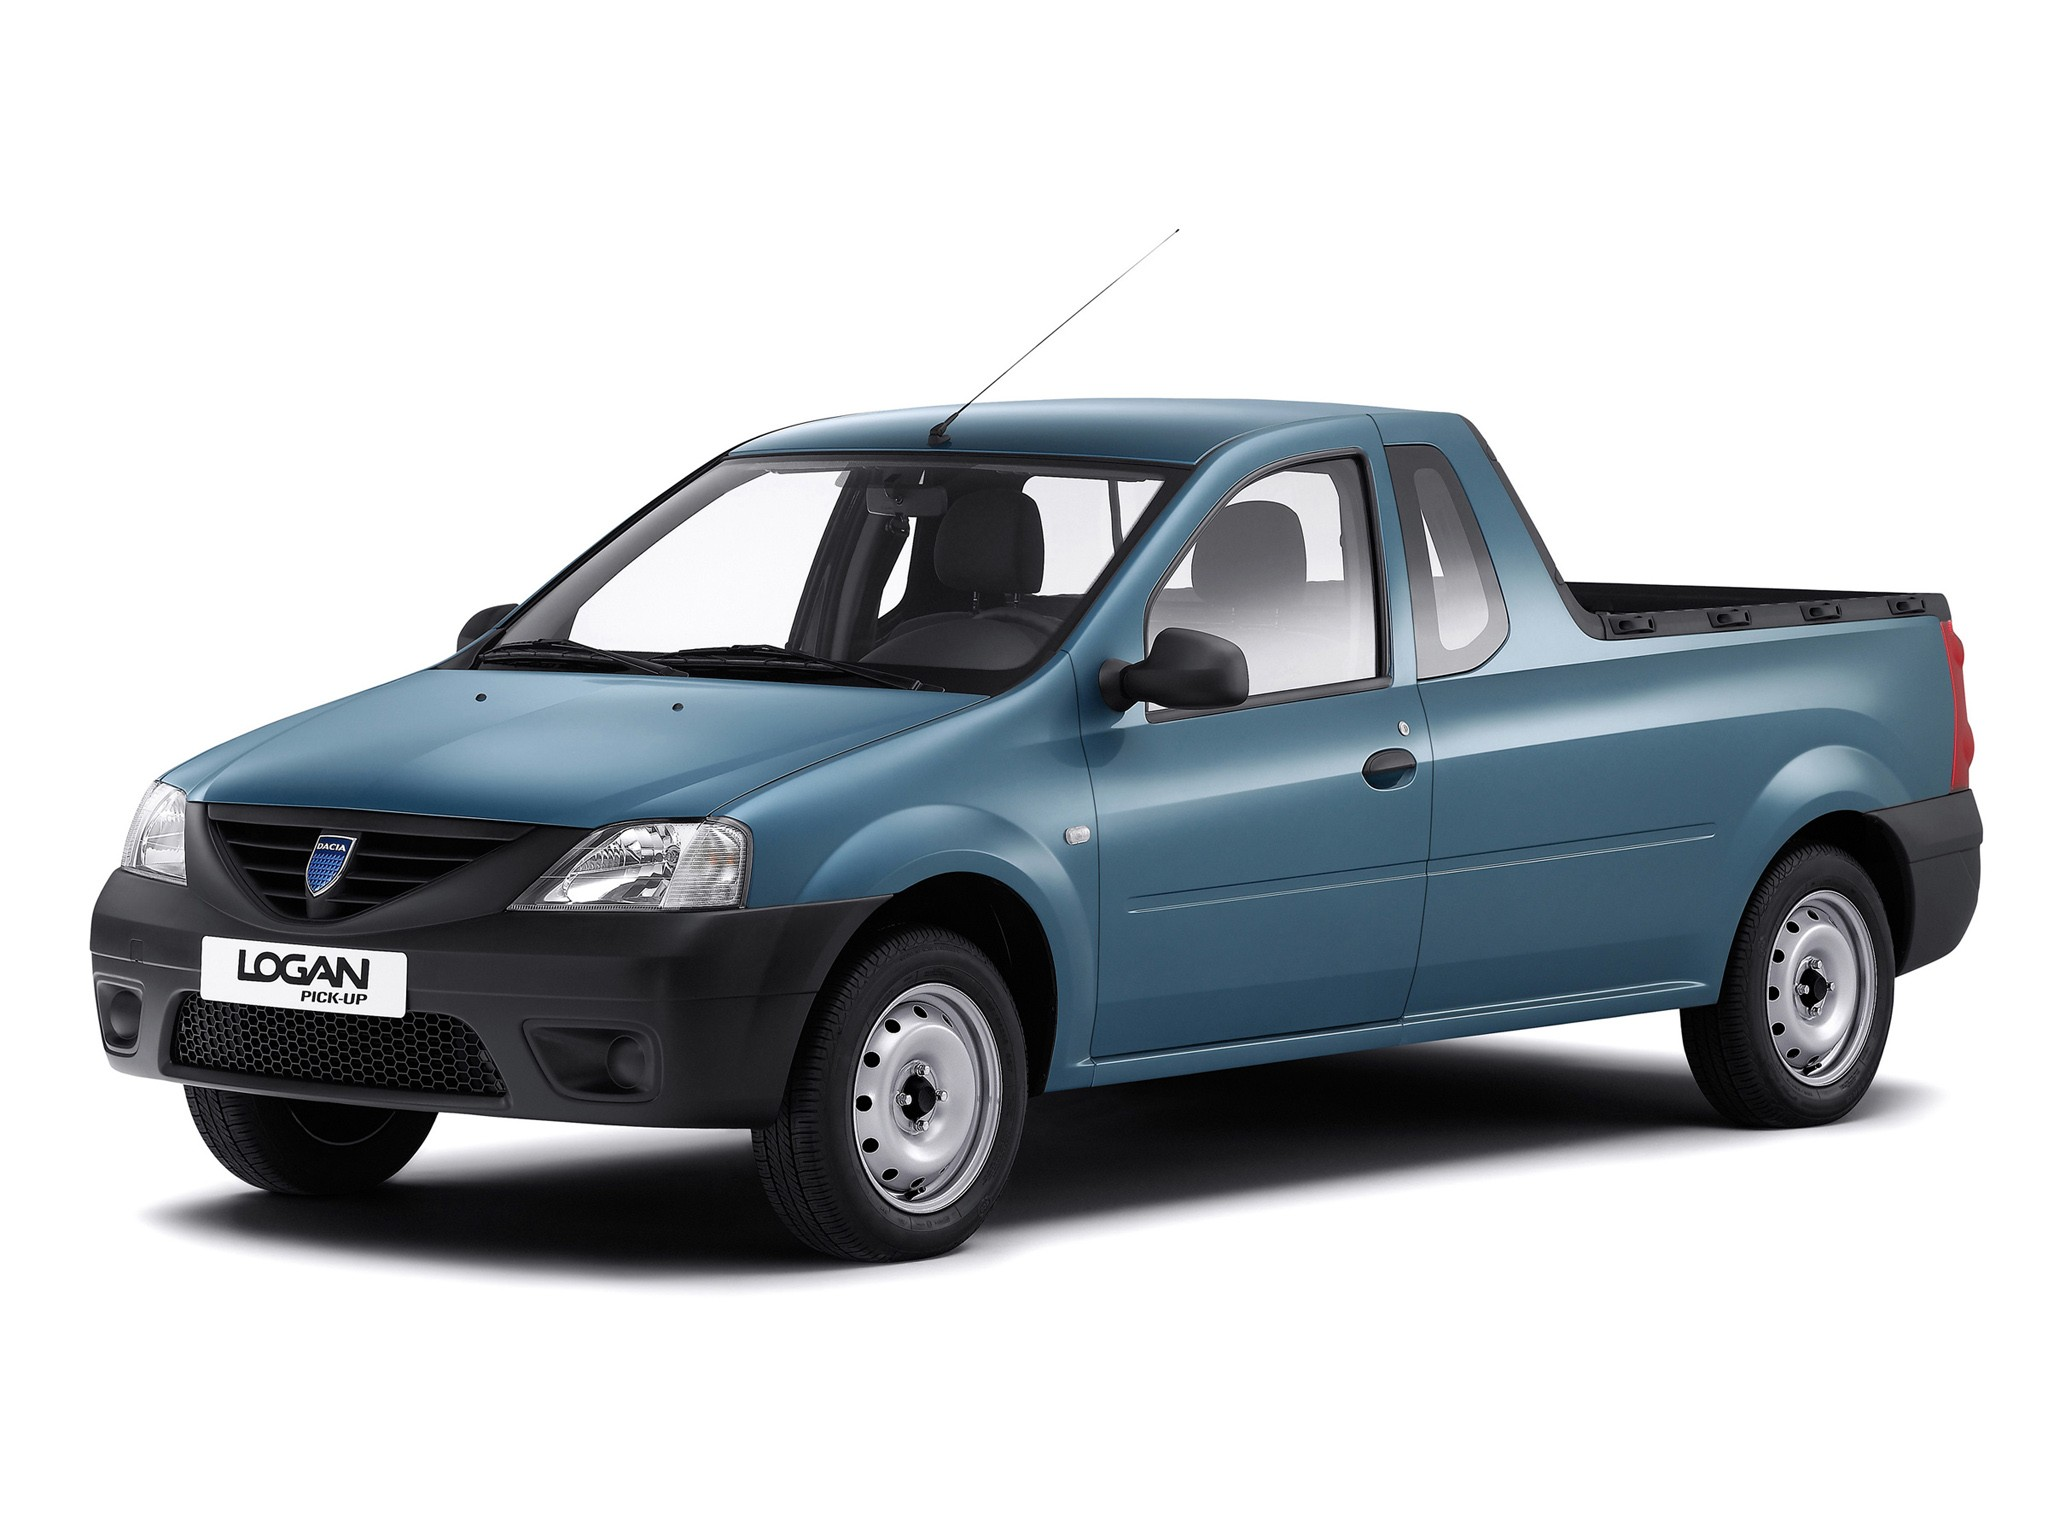 dacia pick up specs 2007 2008 2009 2010 2011 2012 autoevolution. Black Bedroom Furniture Sets. Home Design Ideas